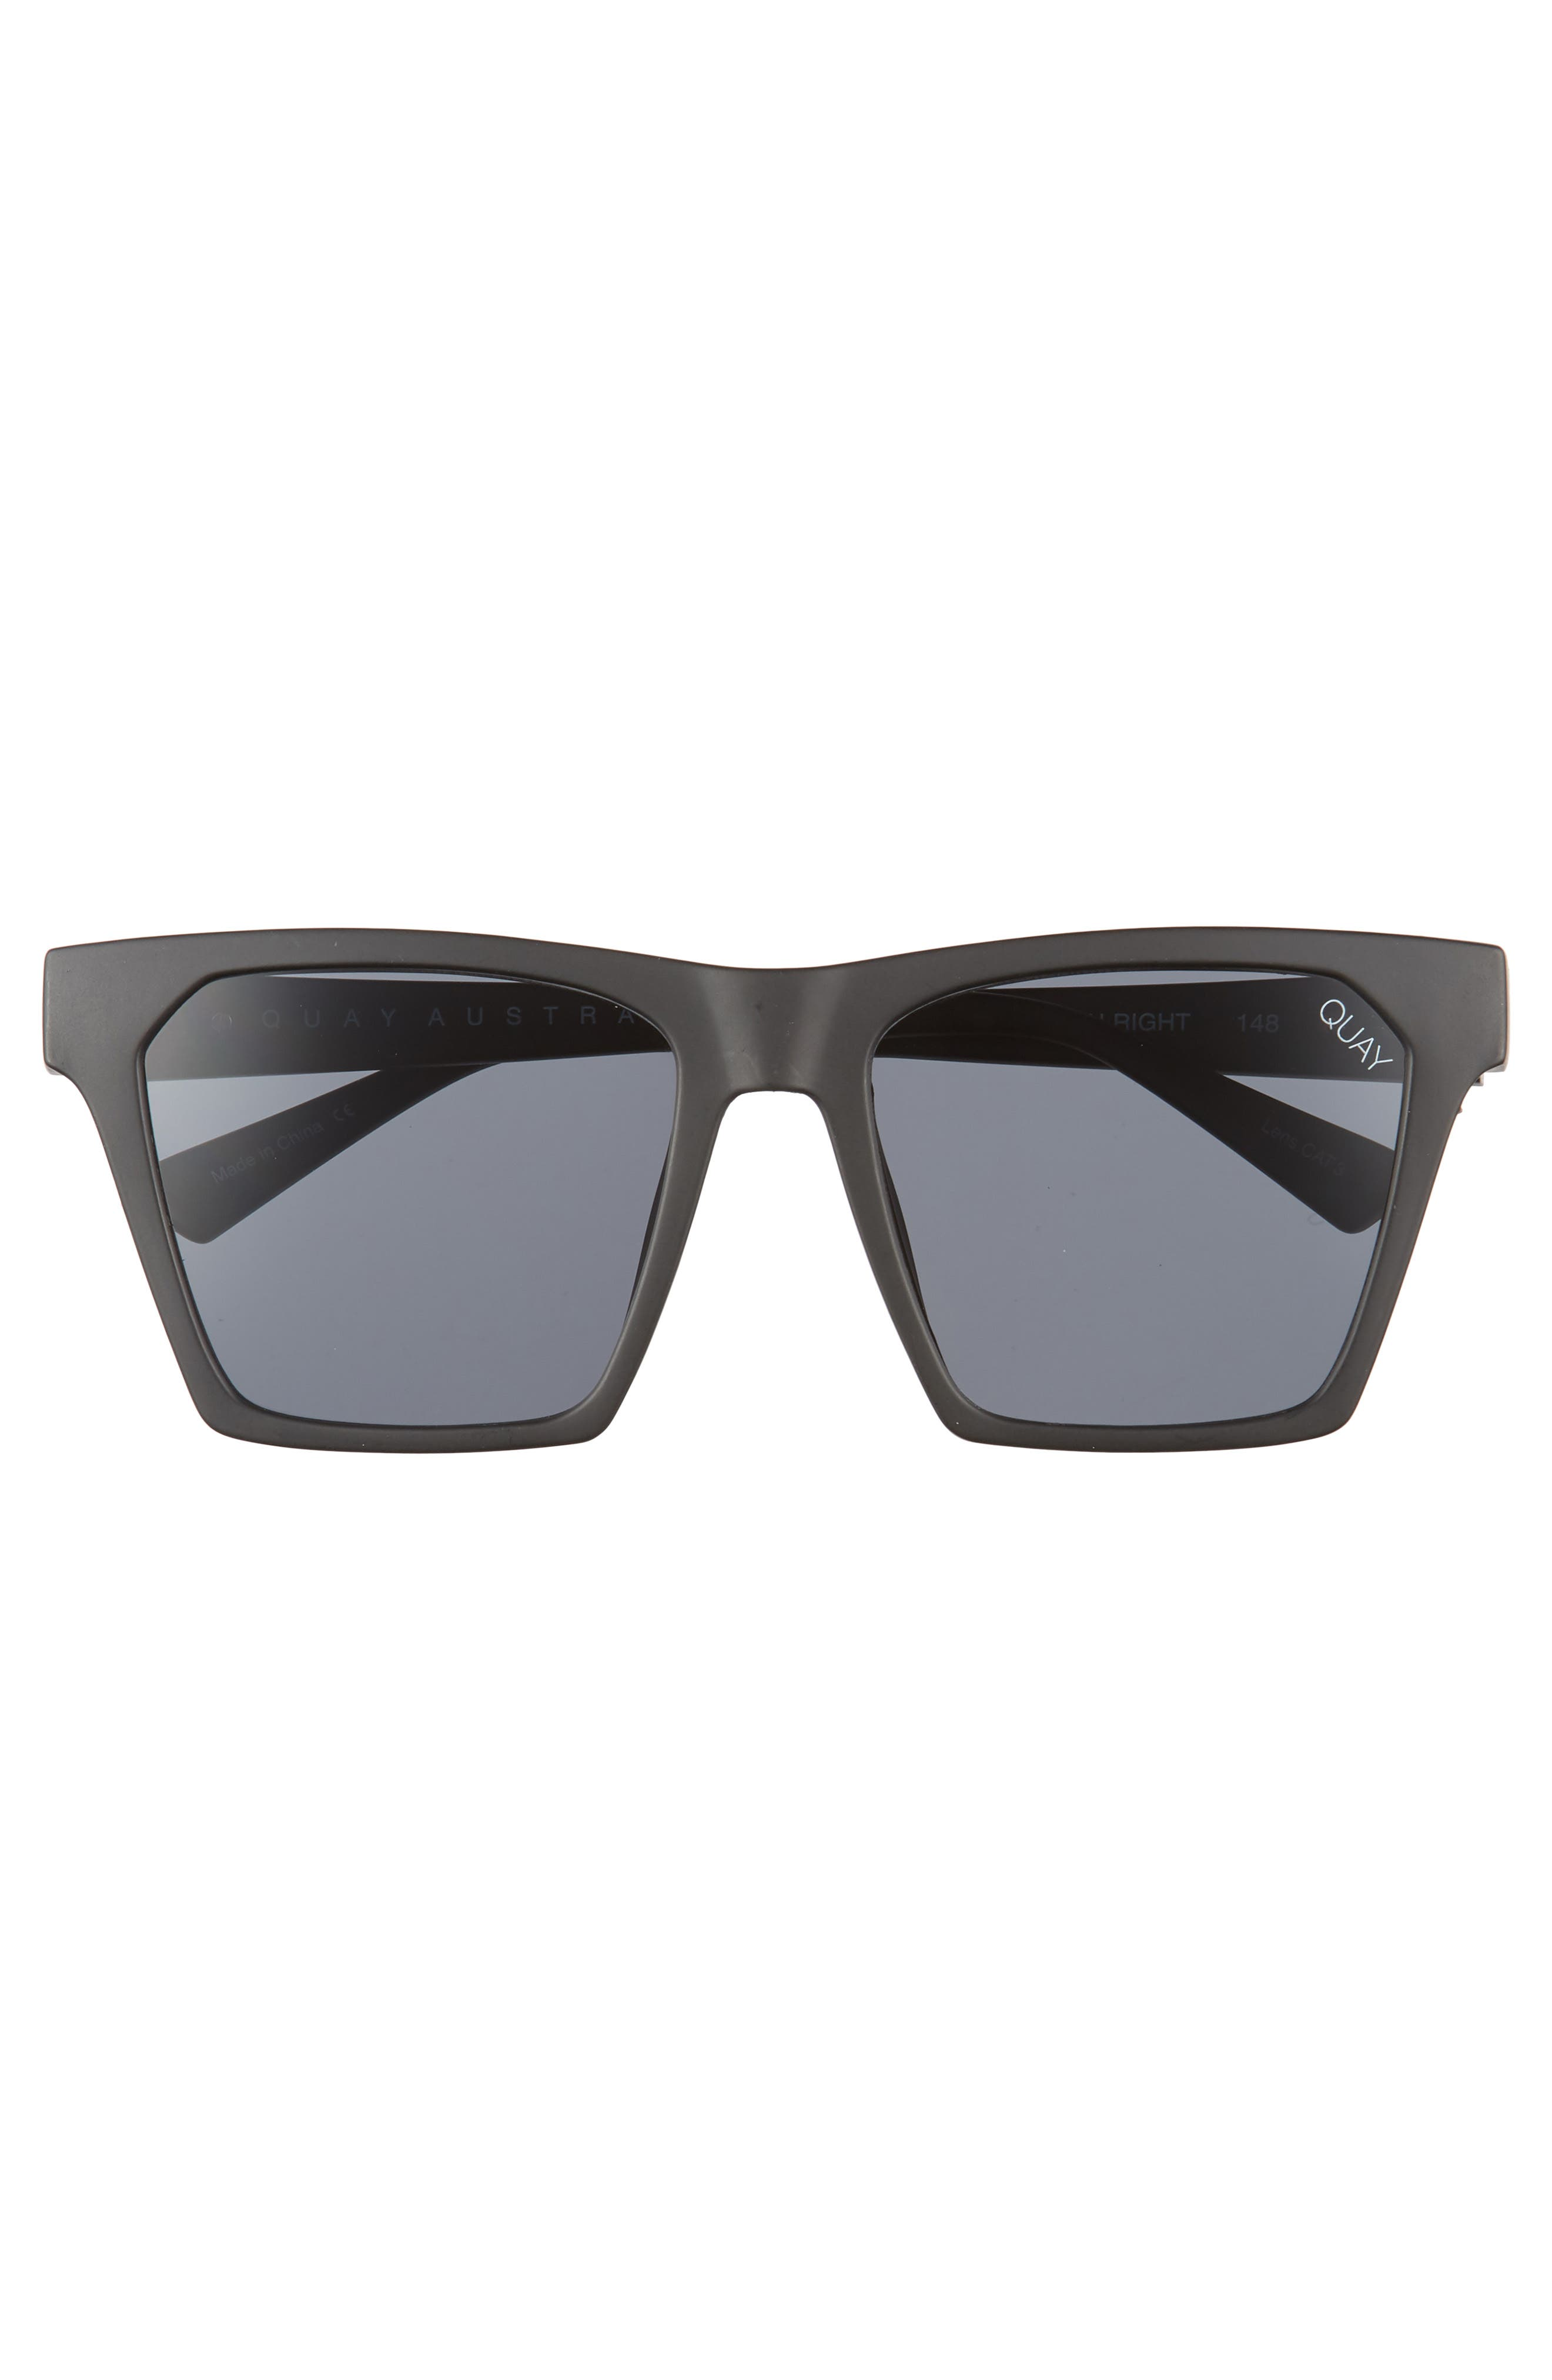 x Missguided Alright 55mm Square Sunglasses,                             Alternate thumbnail 3, color,                             001